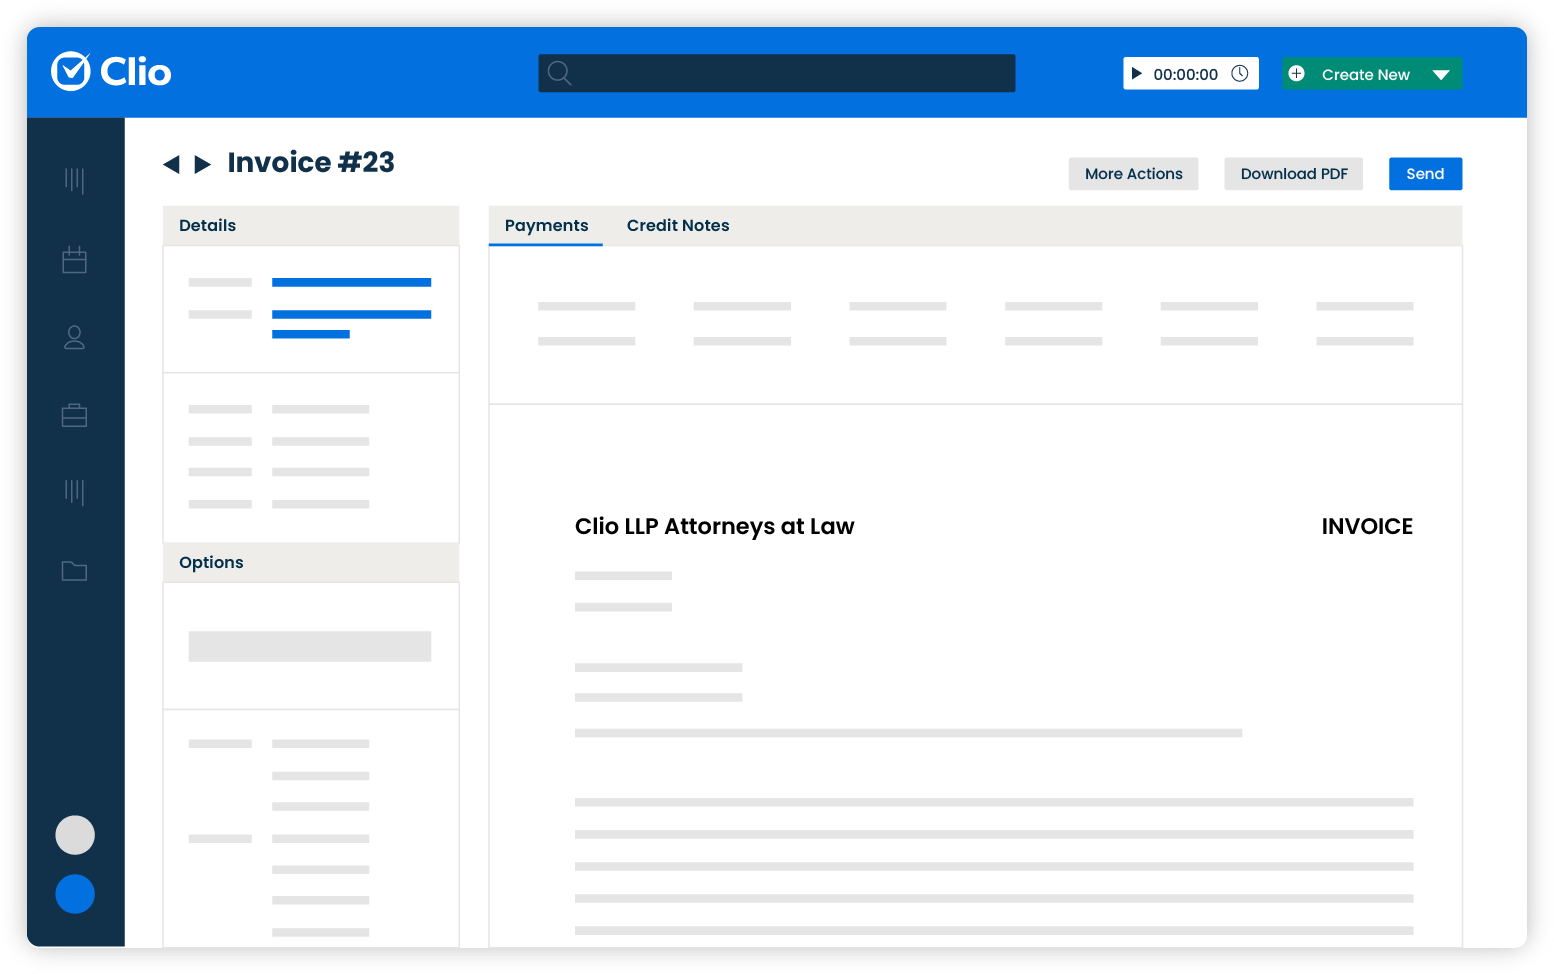 Clio Software - Generate bills in one click. Spend less time on time and expense tracking, review bills faster, and share client invoices easily.